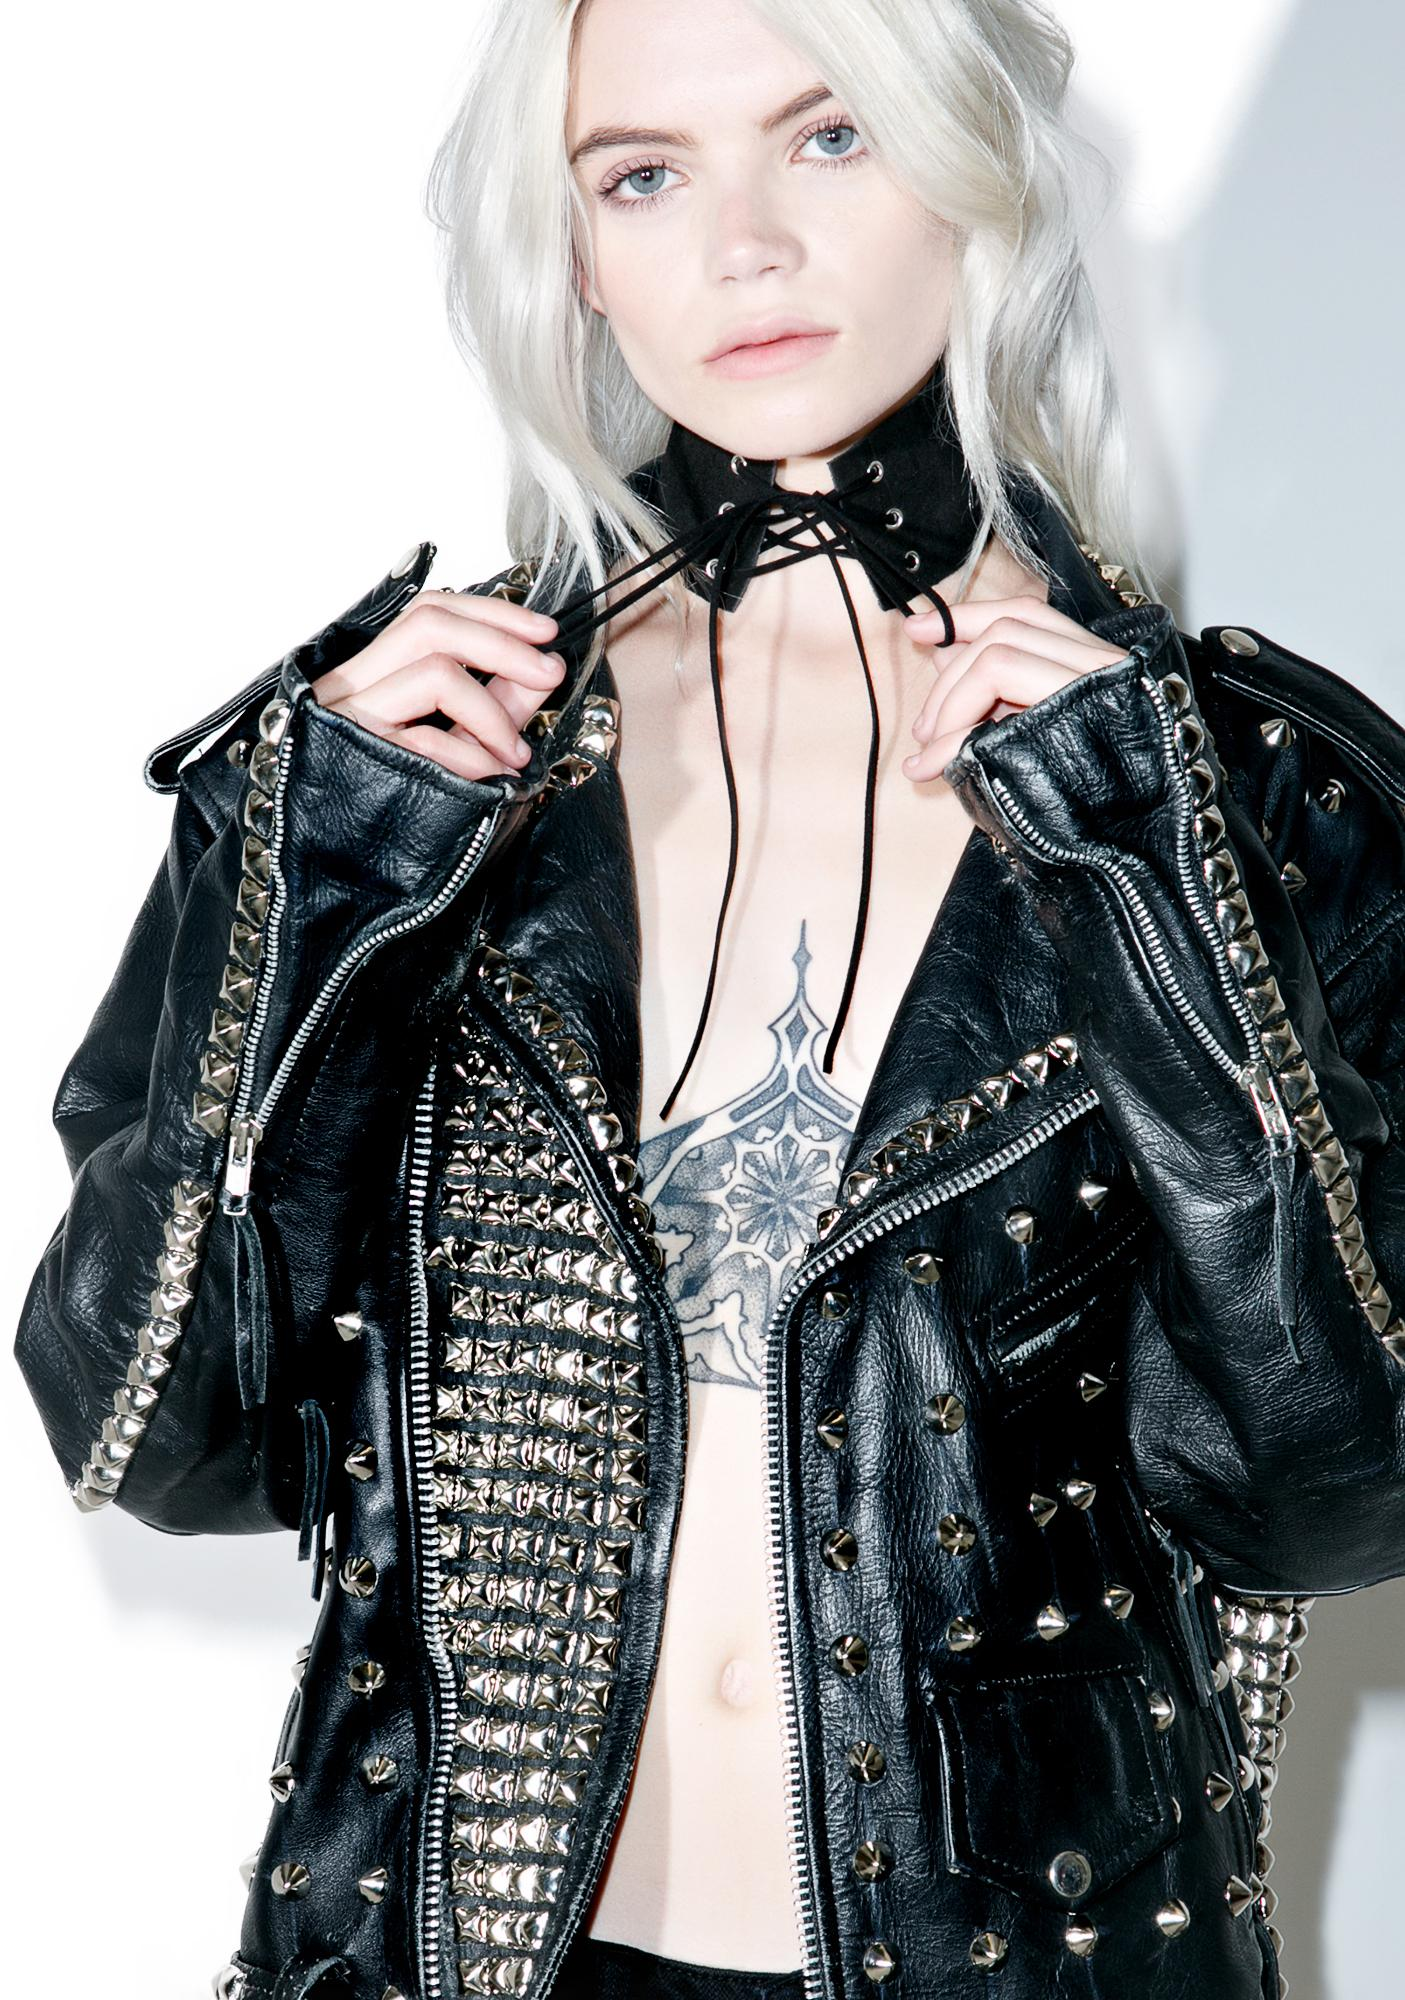 Dark Clockwork Lace-Up Choker